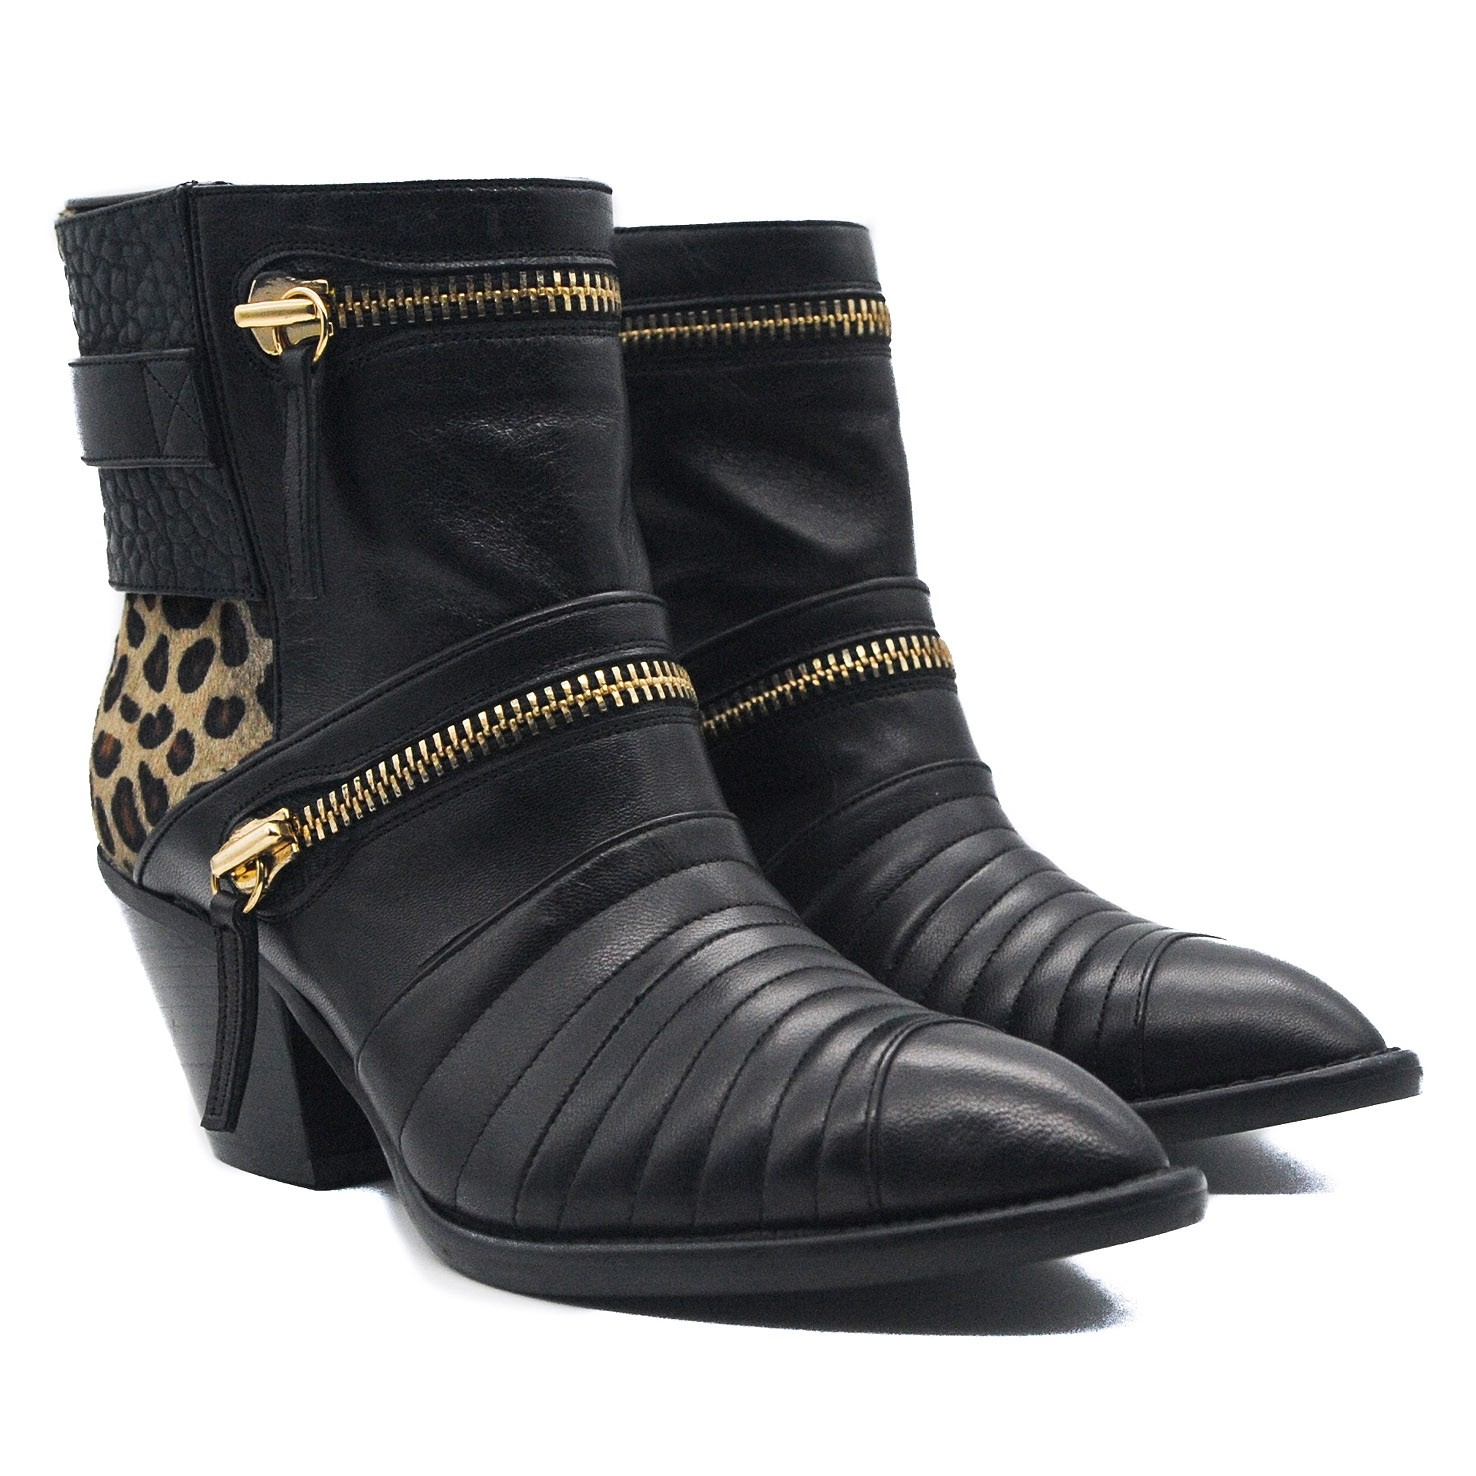 Goody2Shoes Animal Print Pony Hair and Black Leather Ladies' Boot with Decorative Zips